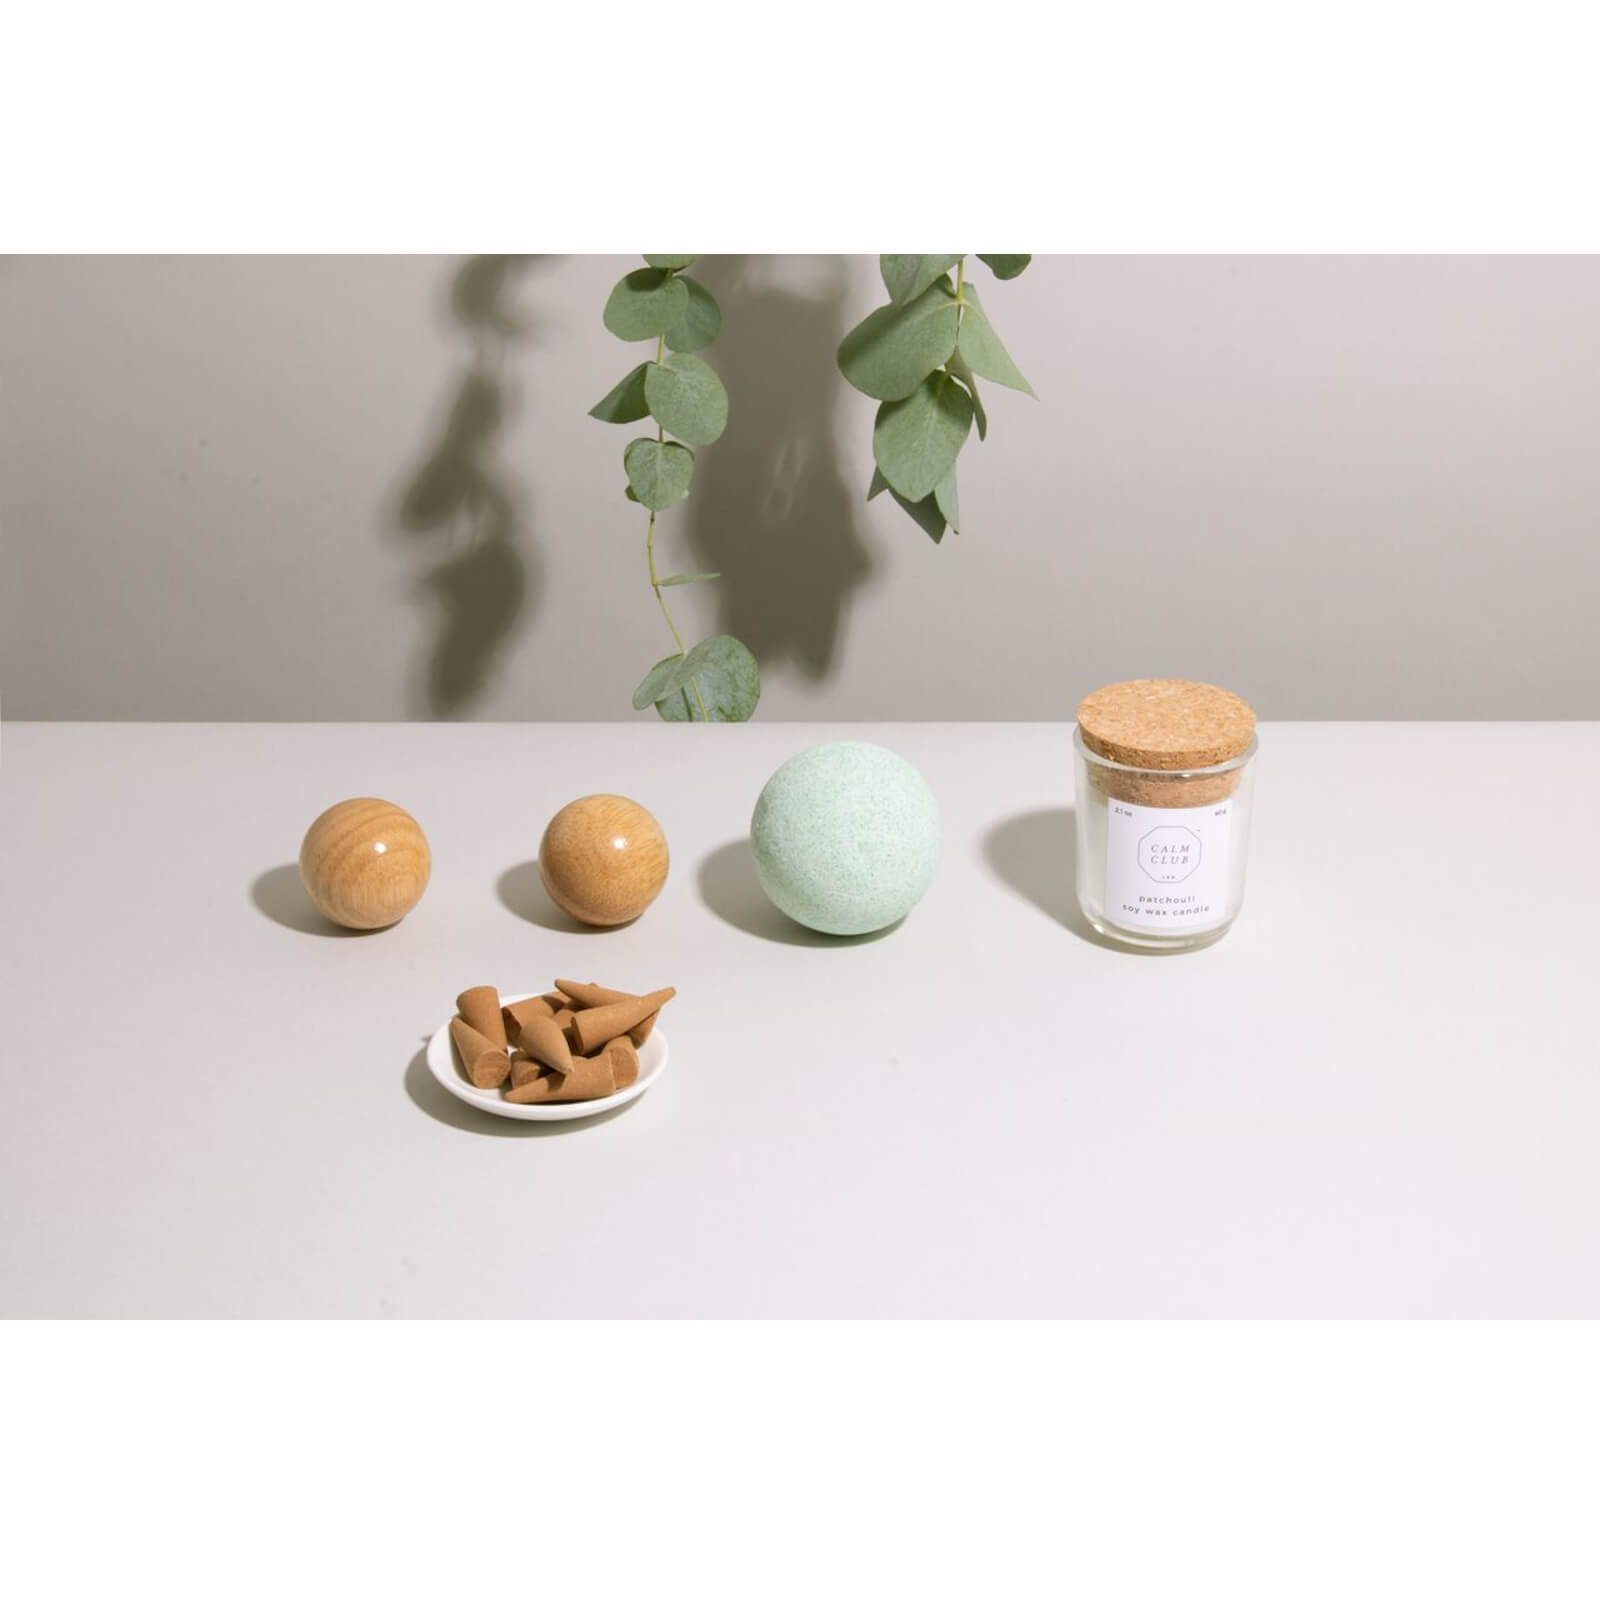 Image of Calm Club Relaxation Rituals Kit